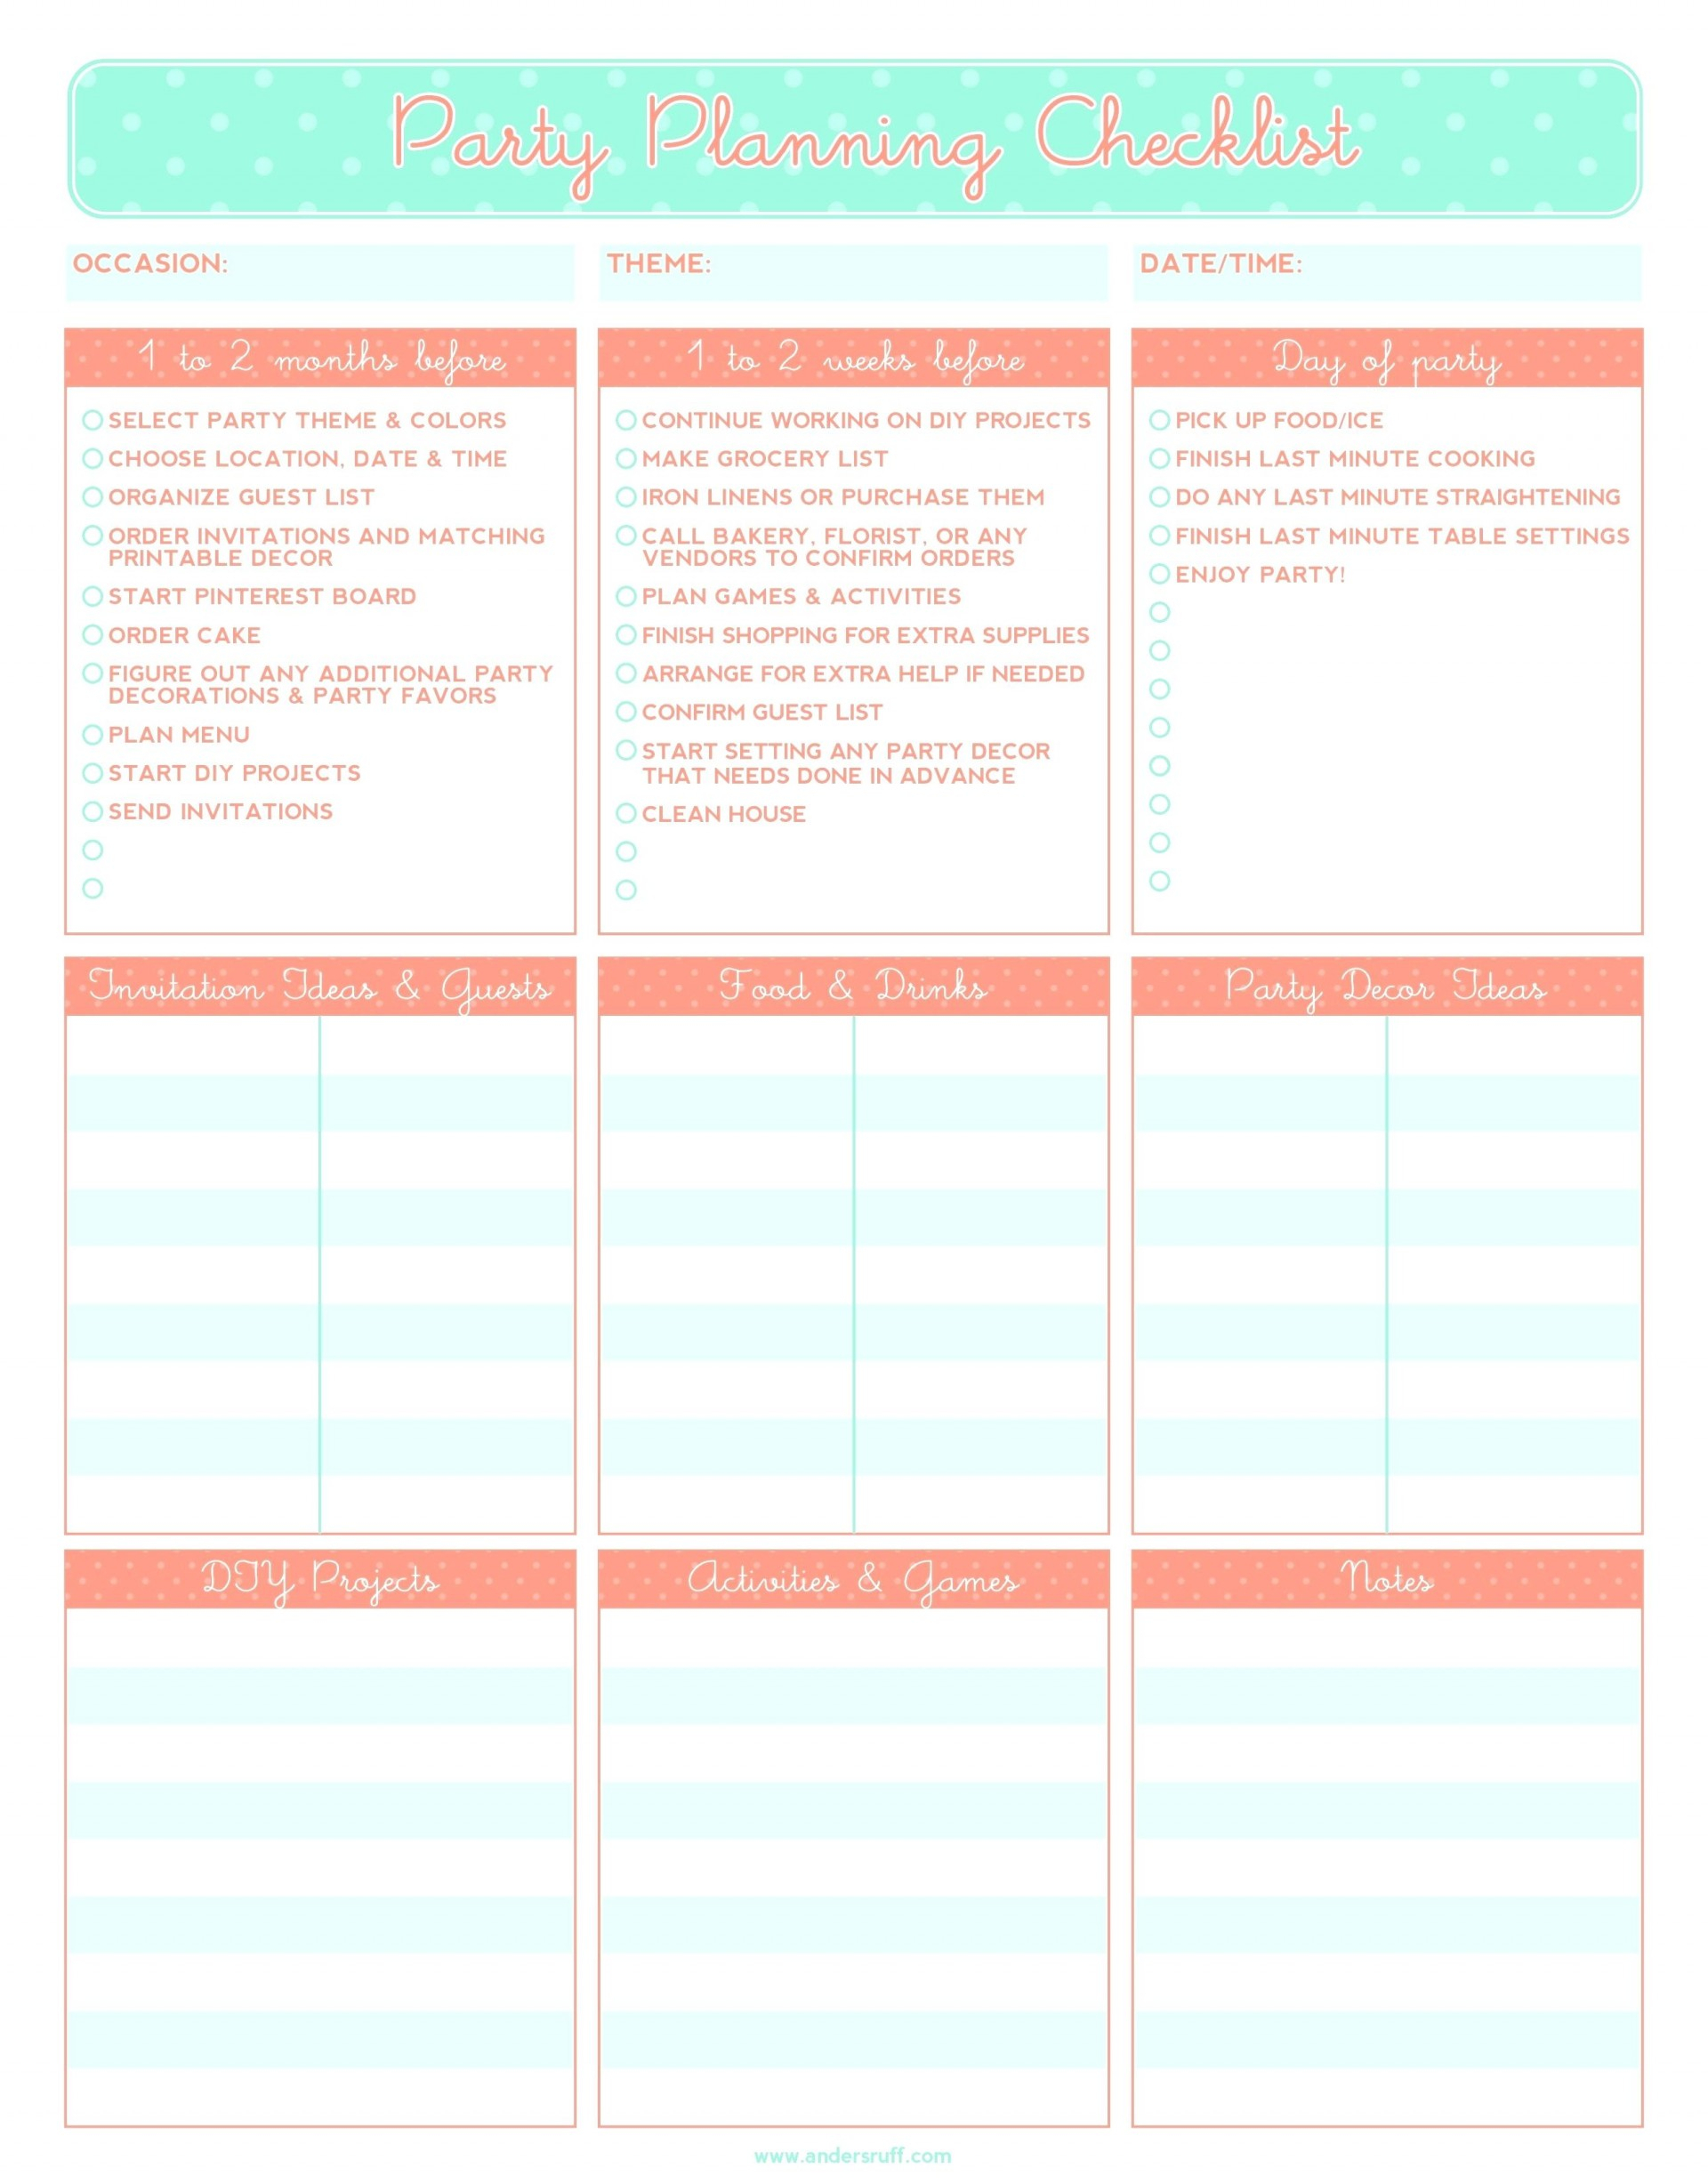 Event Planning Spreadsheet Excel In 021 Template Ideas Event Planning Document Party Spreadsheet New